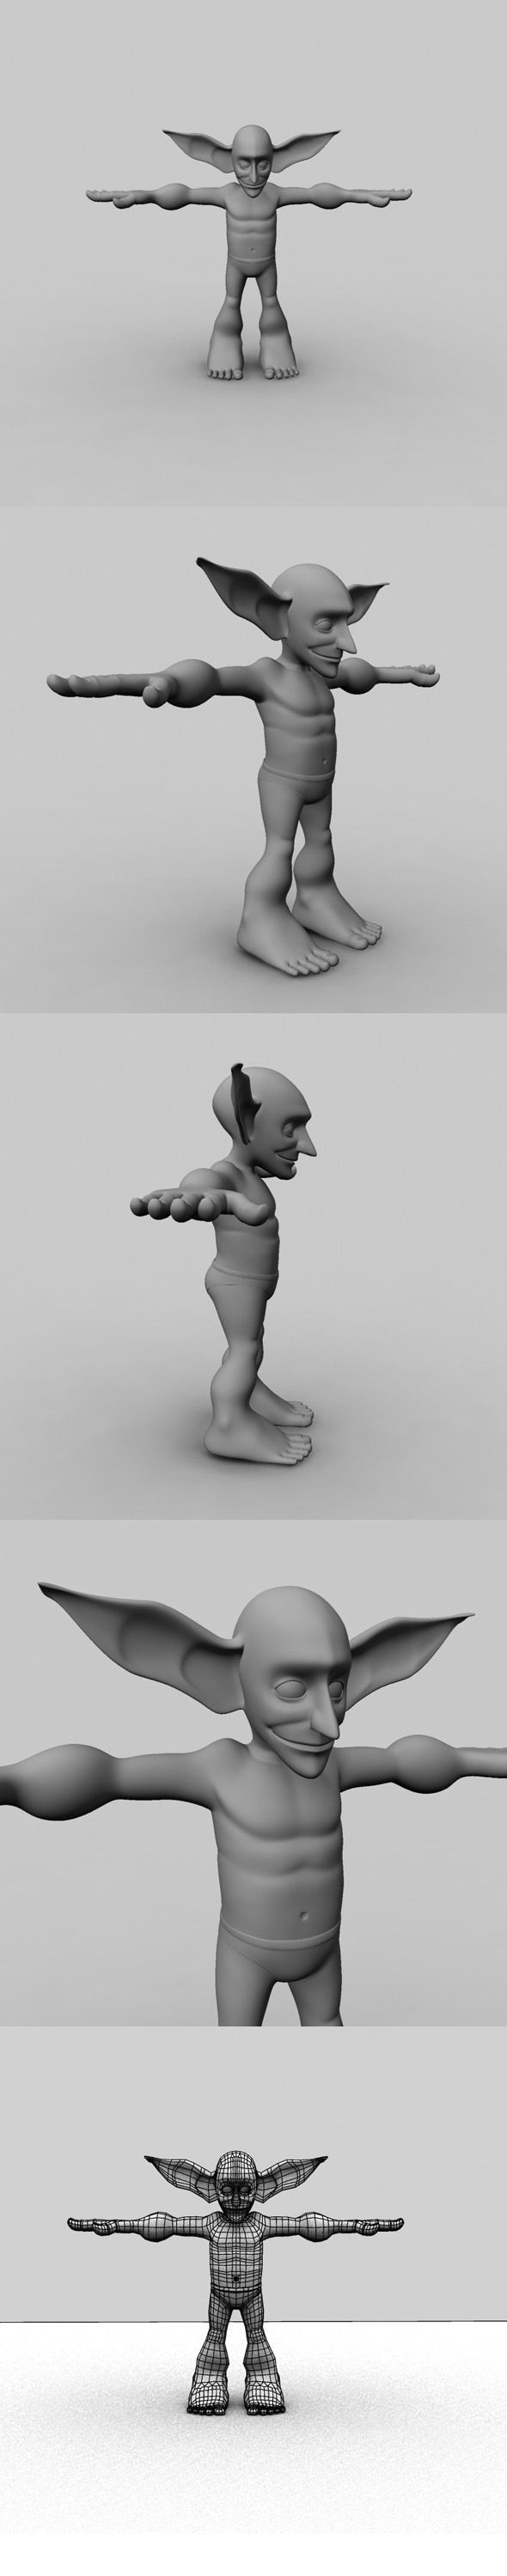 Cartoon Character Model - 3DOcean Item for Sale